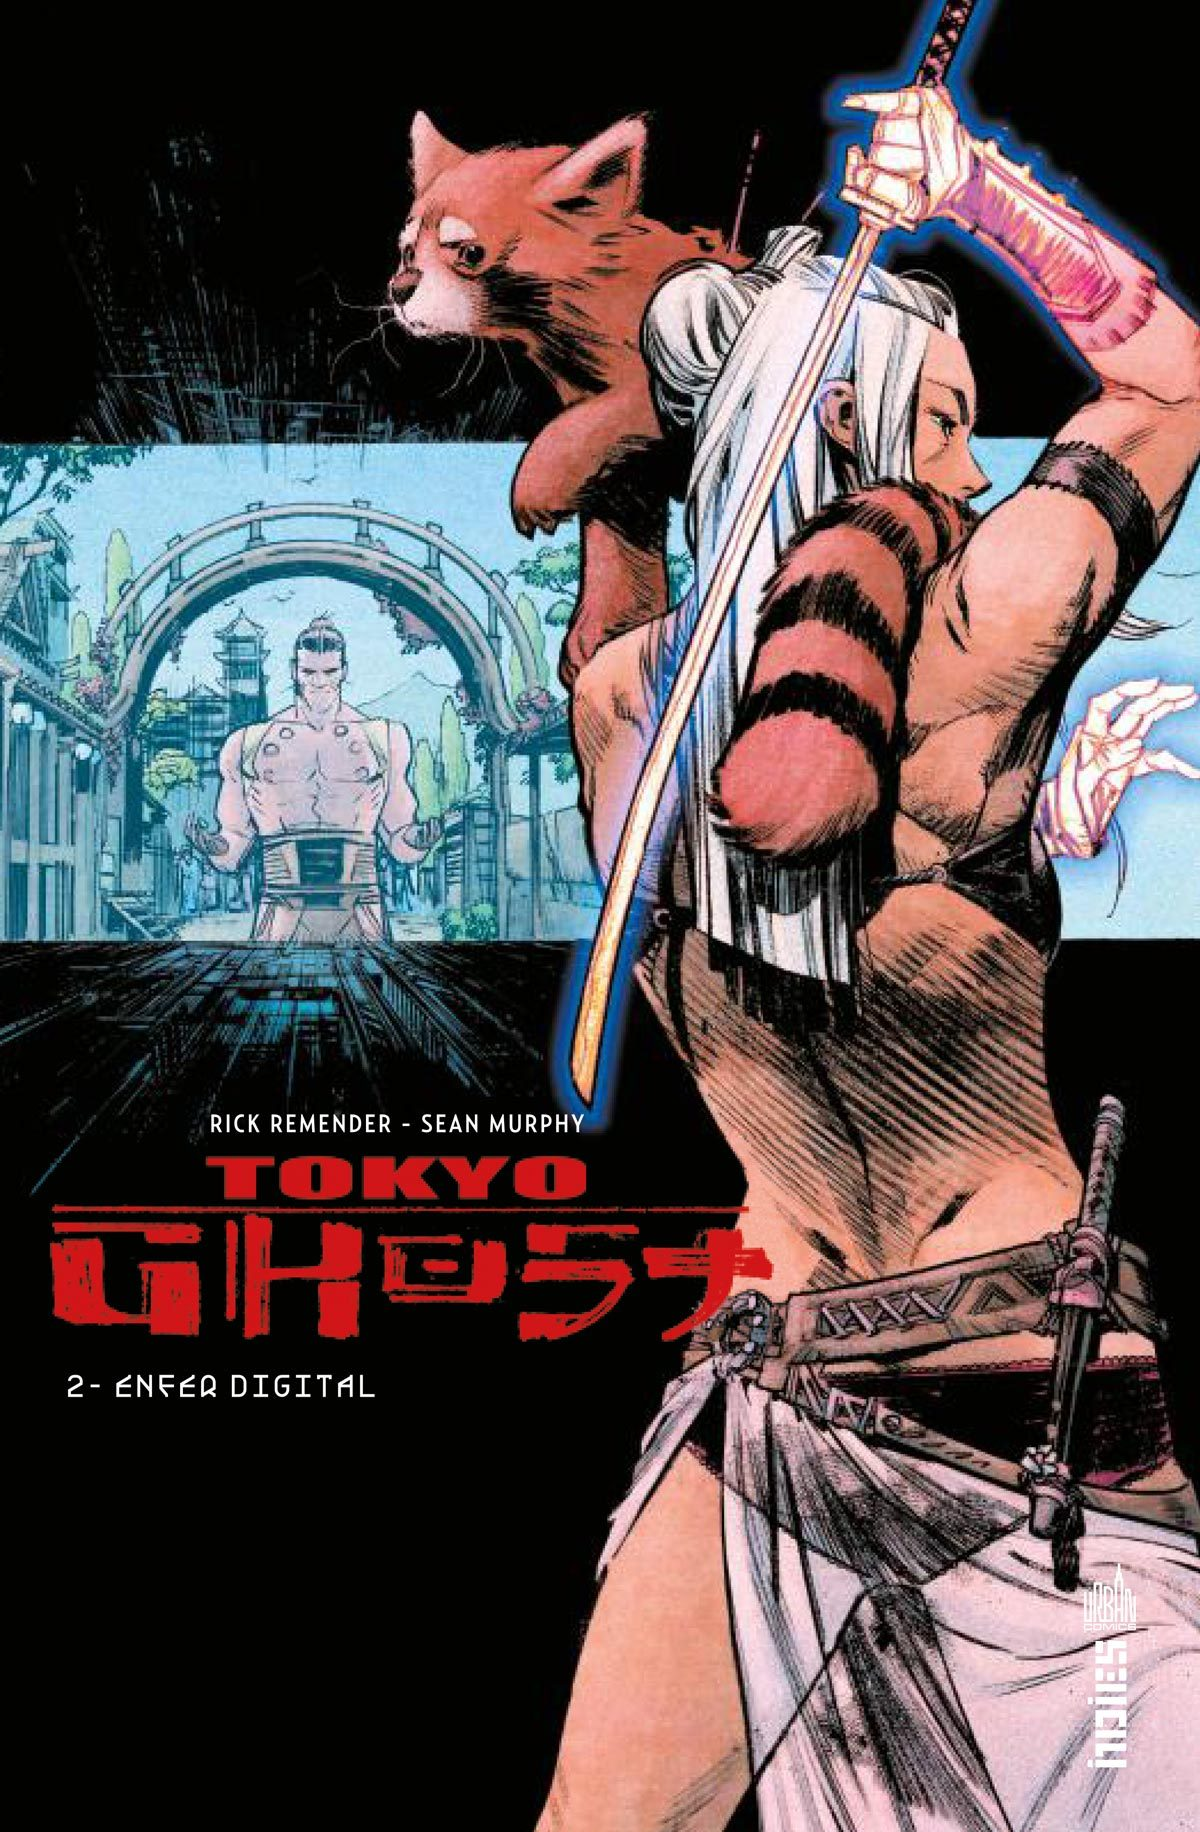 TOKYO GHOST TOME 2